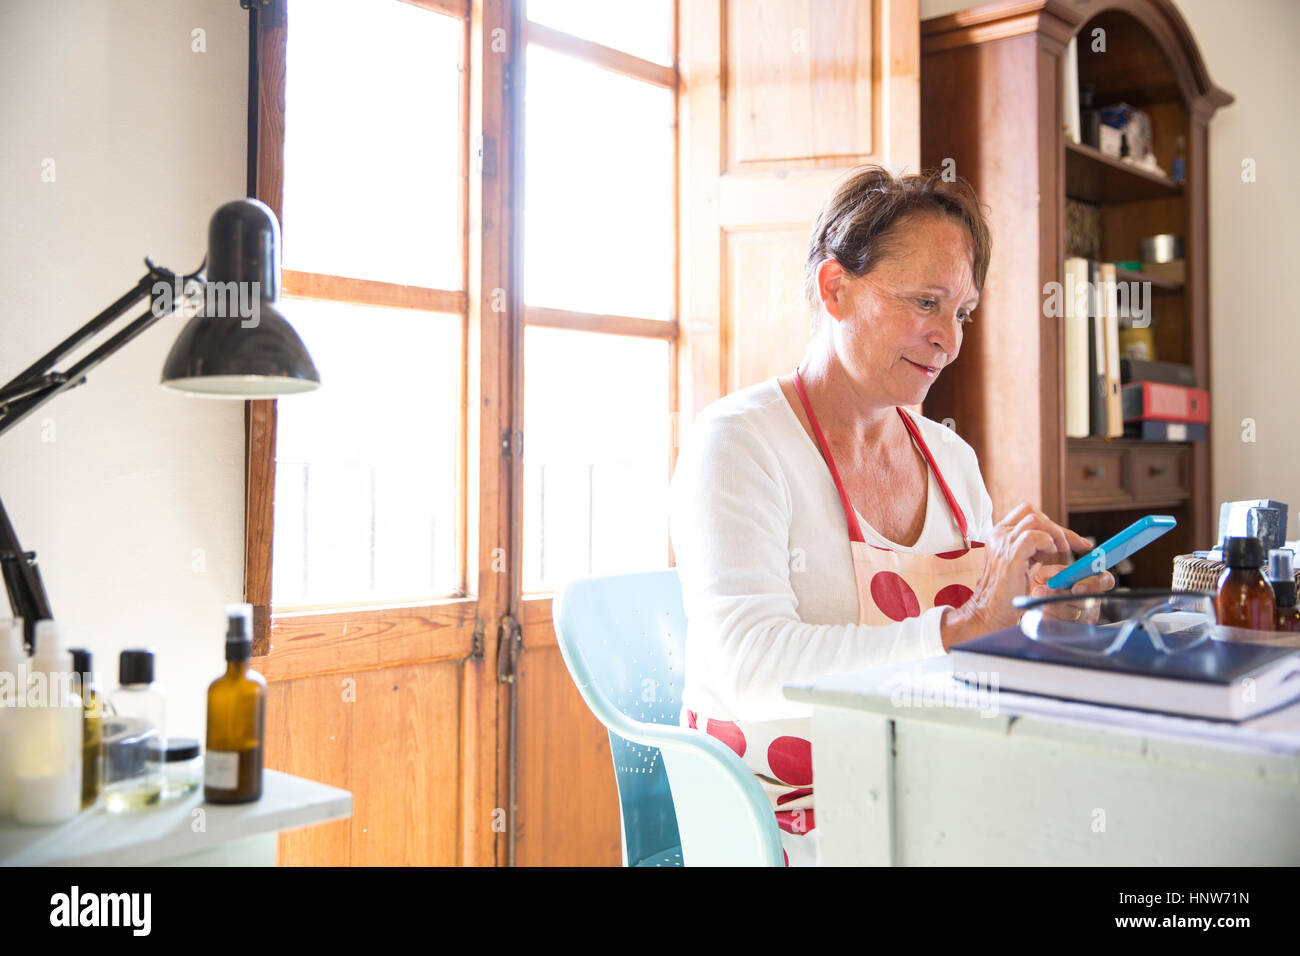 Mature woman texting on office smartphone in handmade soap workshop - Stock Image